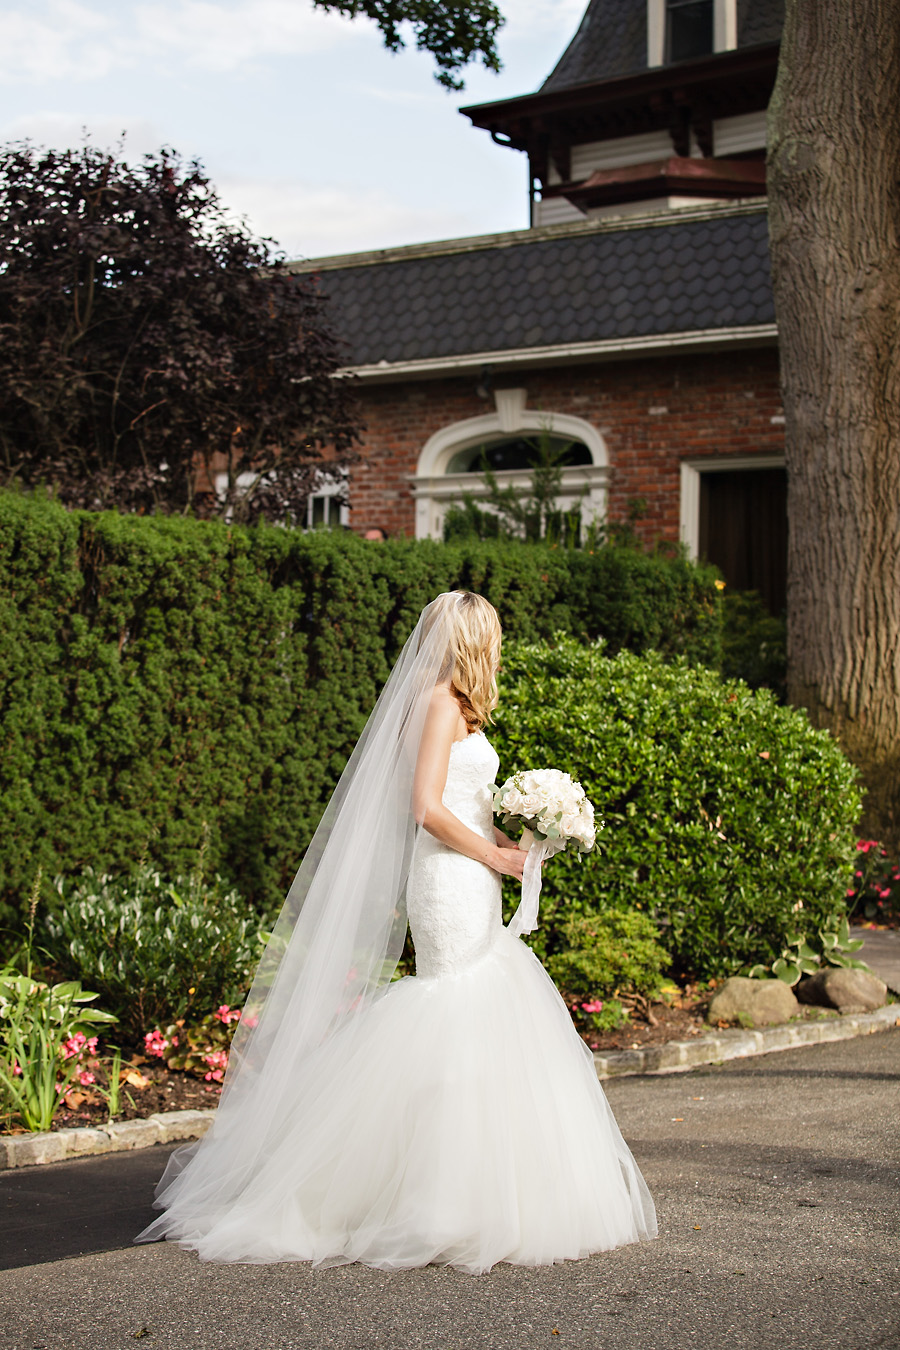 new-york-wedding-14-12022014-ky